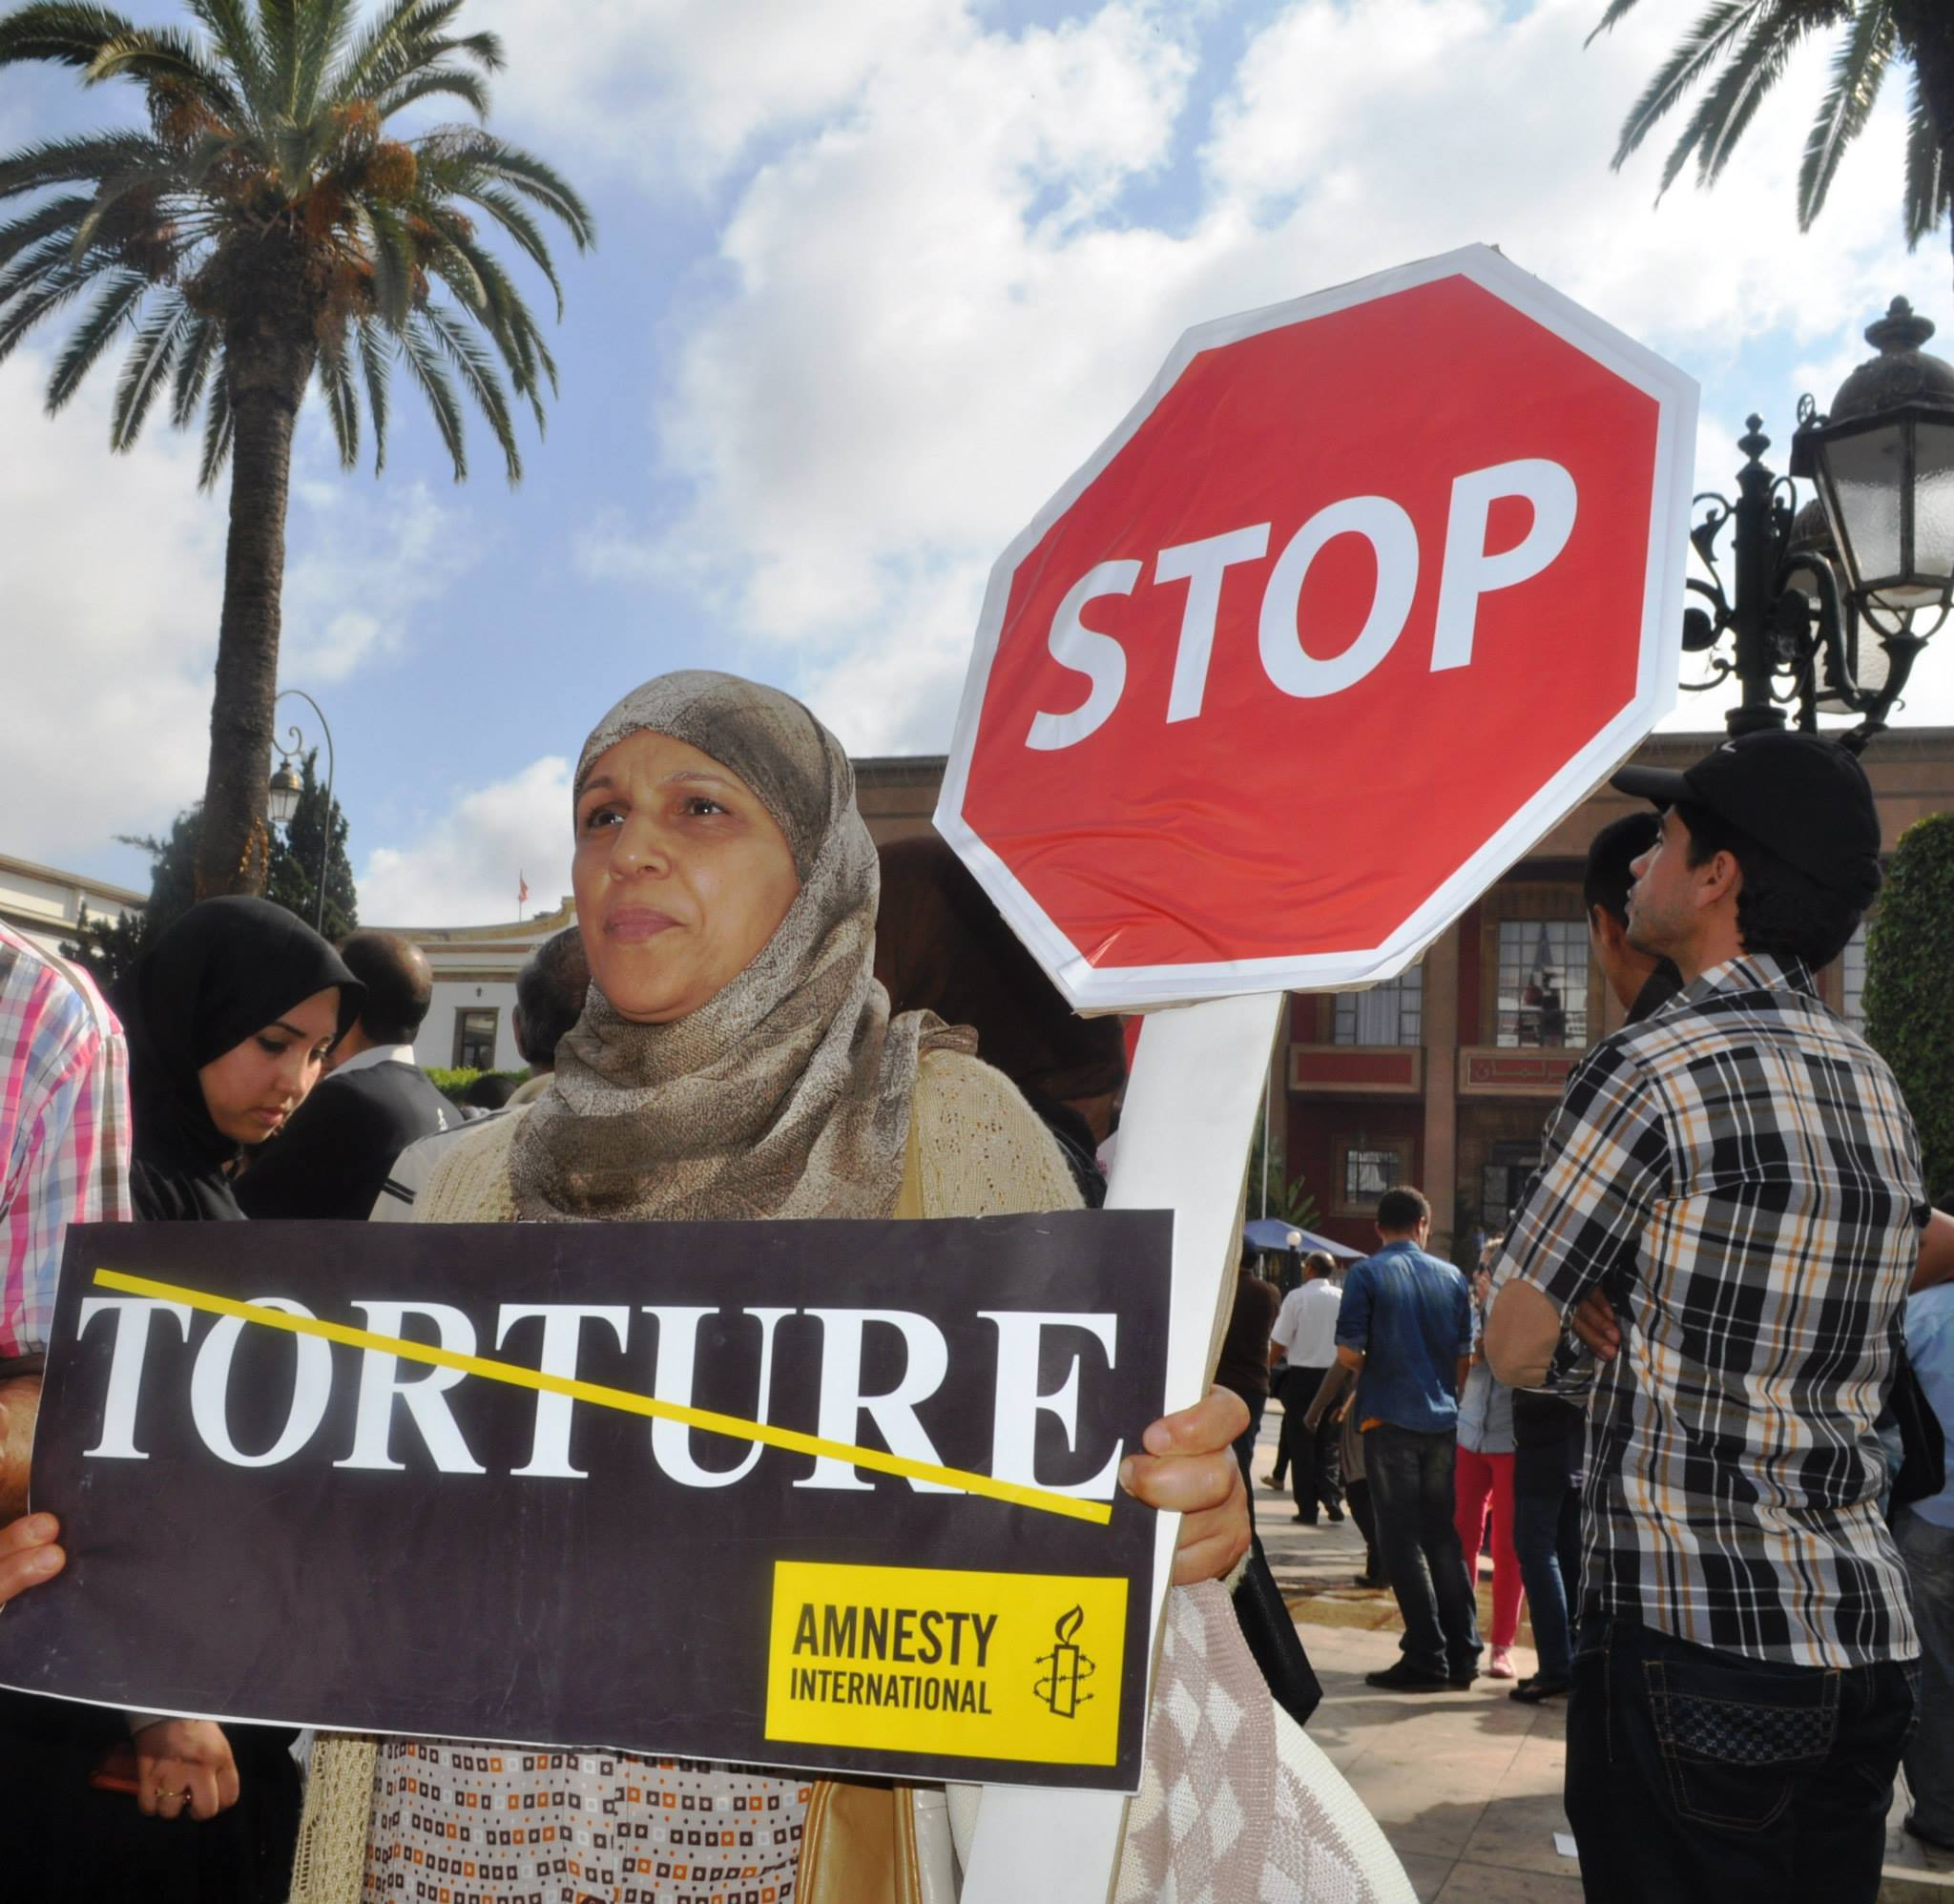 Some photos of some of AI Morocco actions on Stop Torture. Stop sign